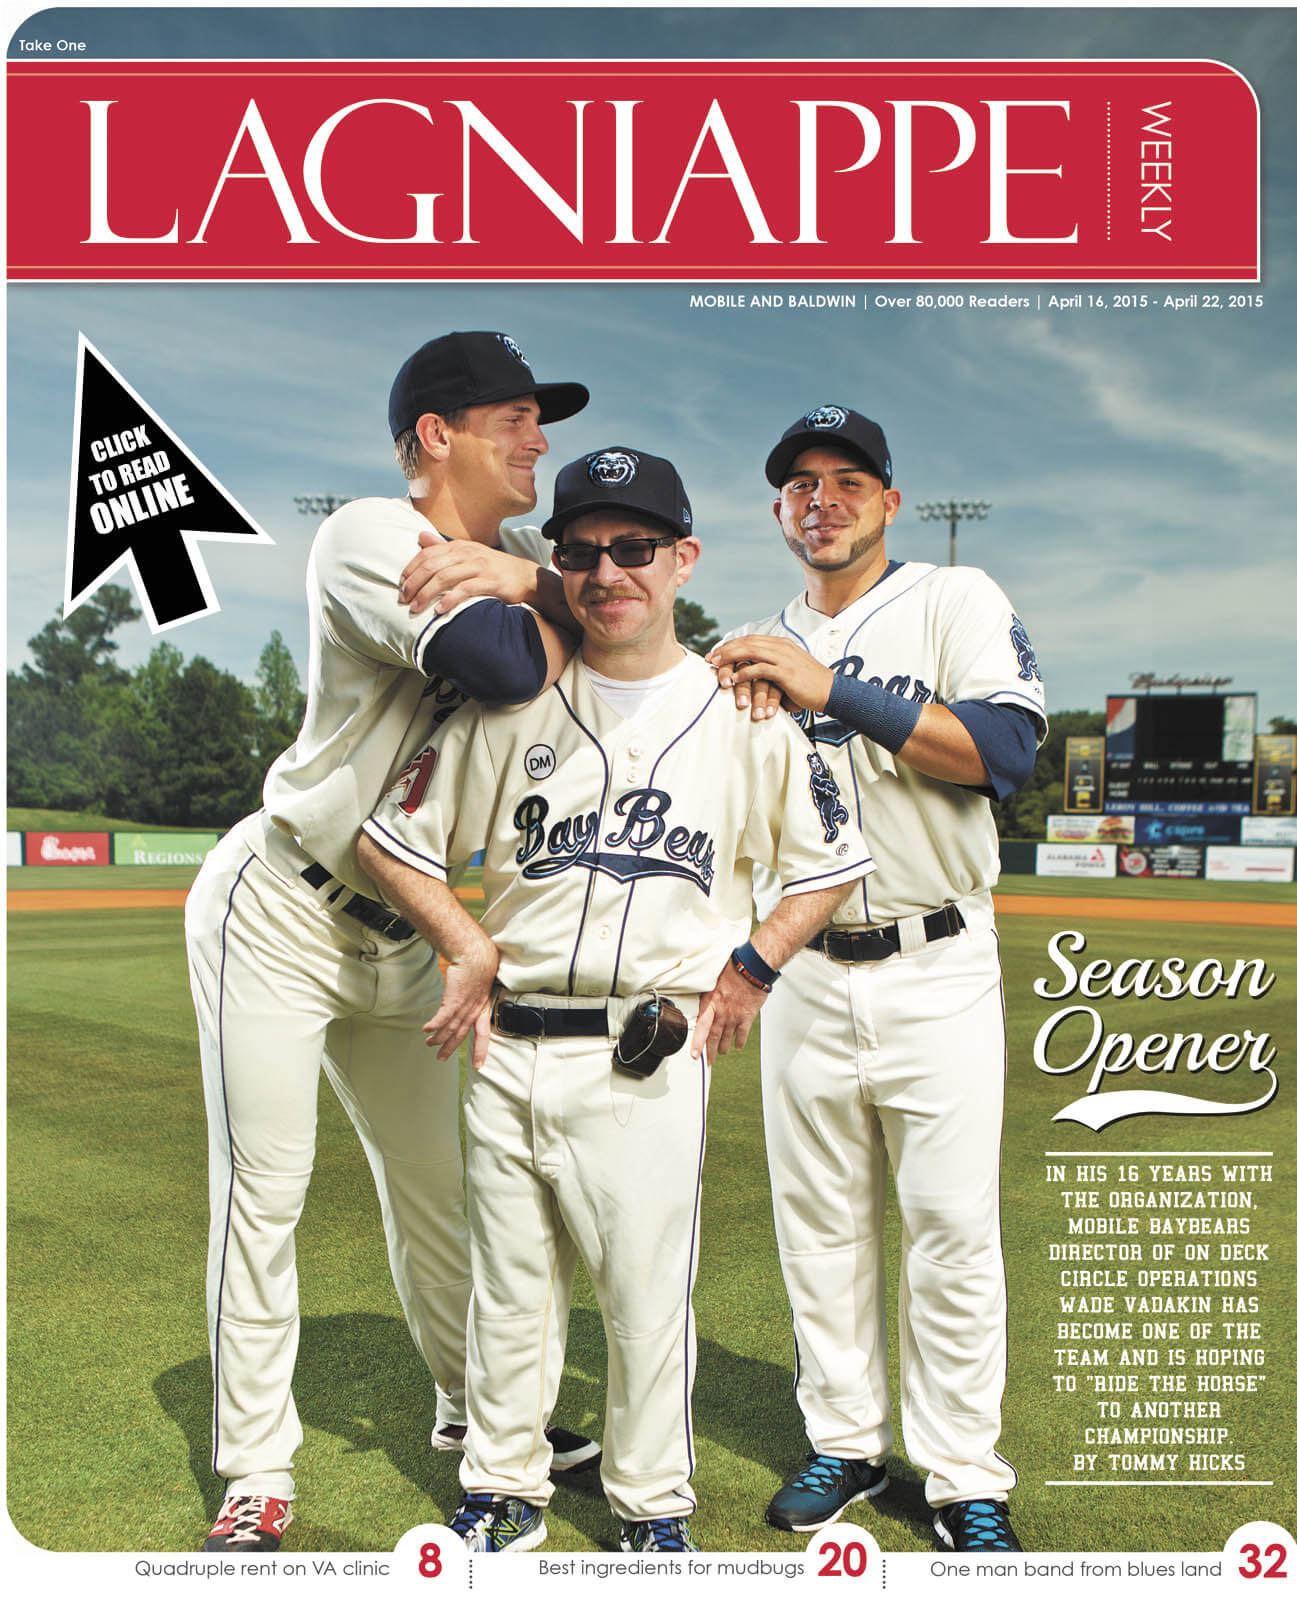 Lagniappe April 16-22, 2015